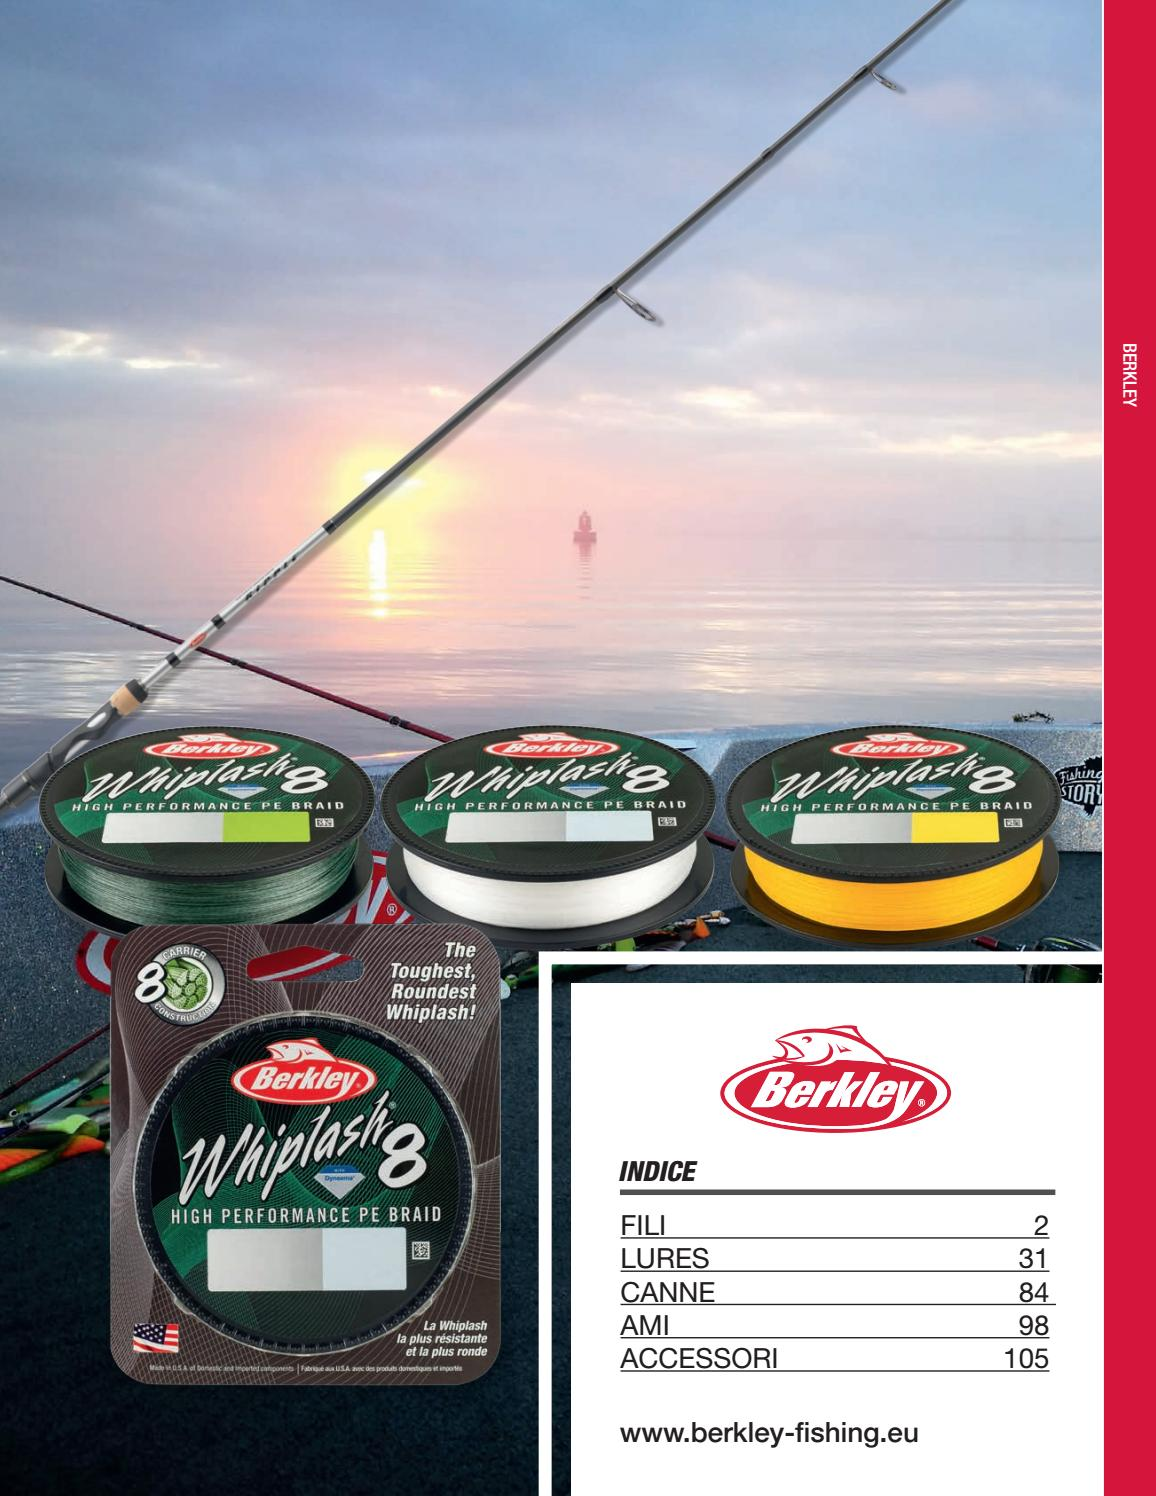 Sparkle Power uova//Pasta Uova FL ORANGE Berkleys POWERBAIT ® 1004877*2019